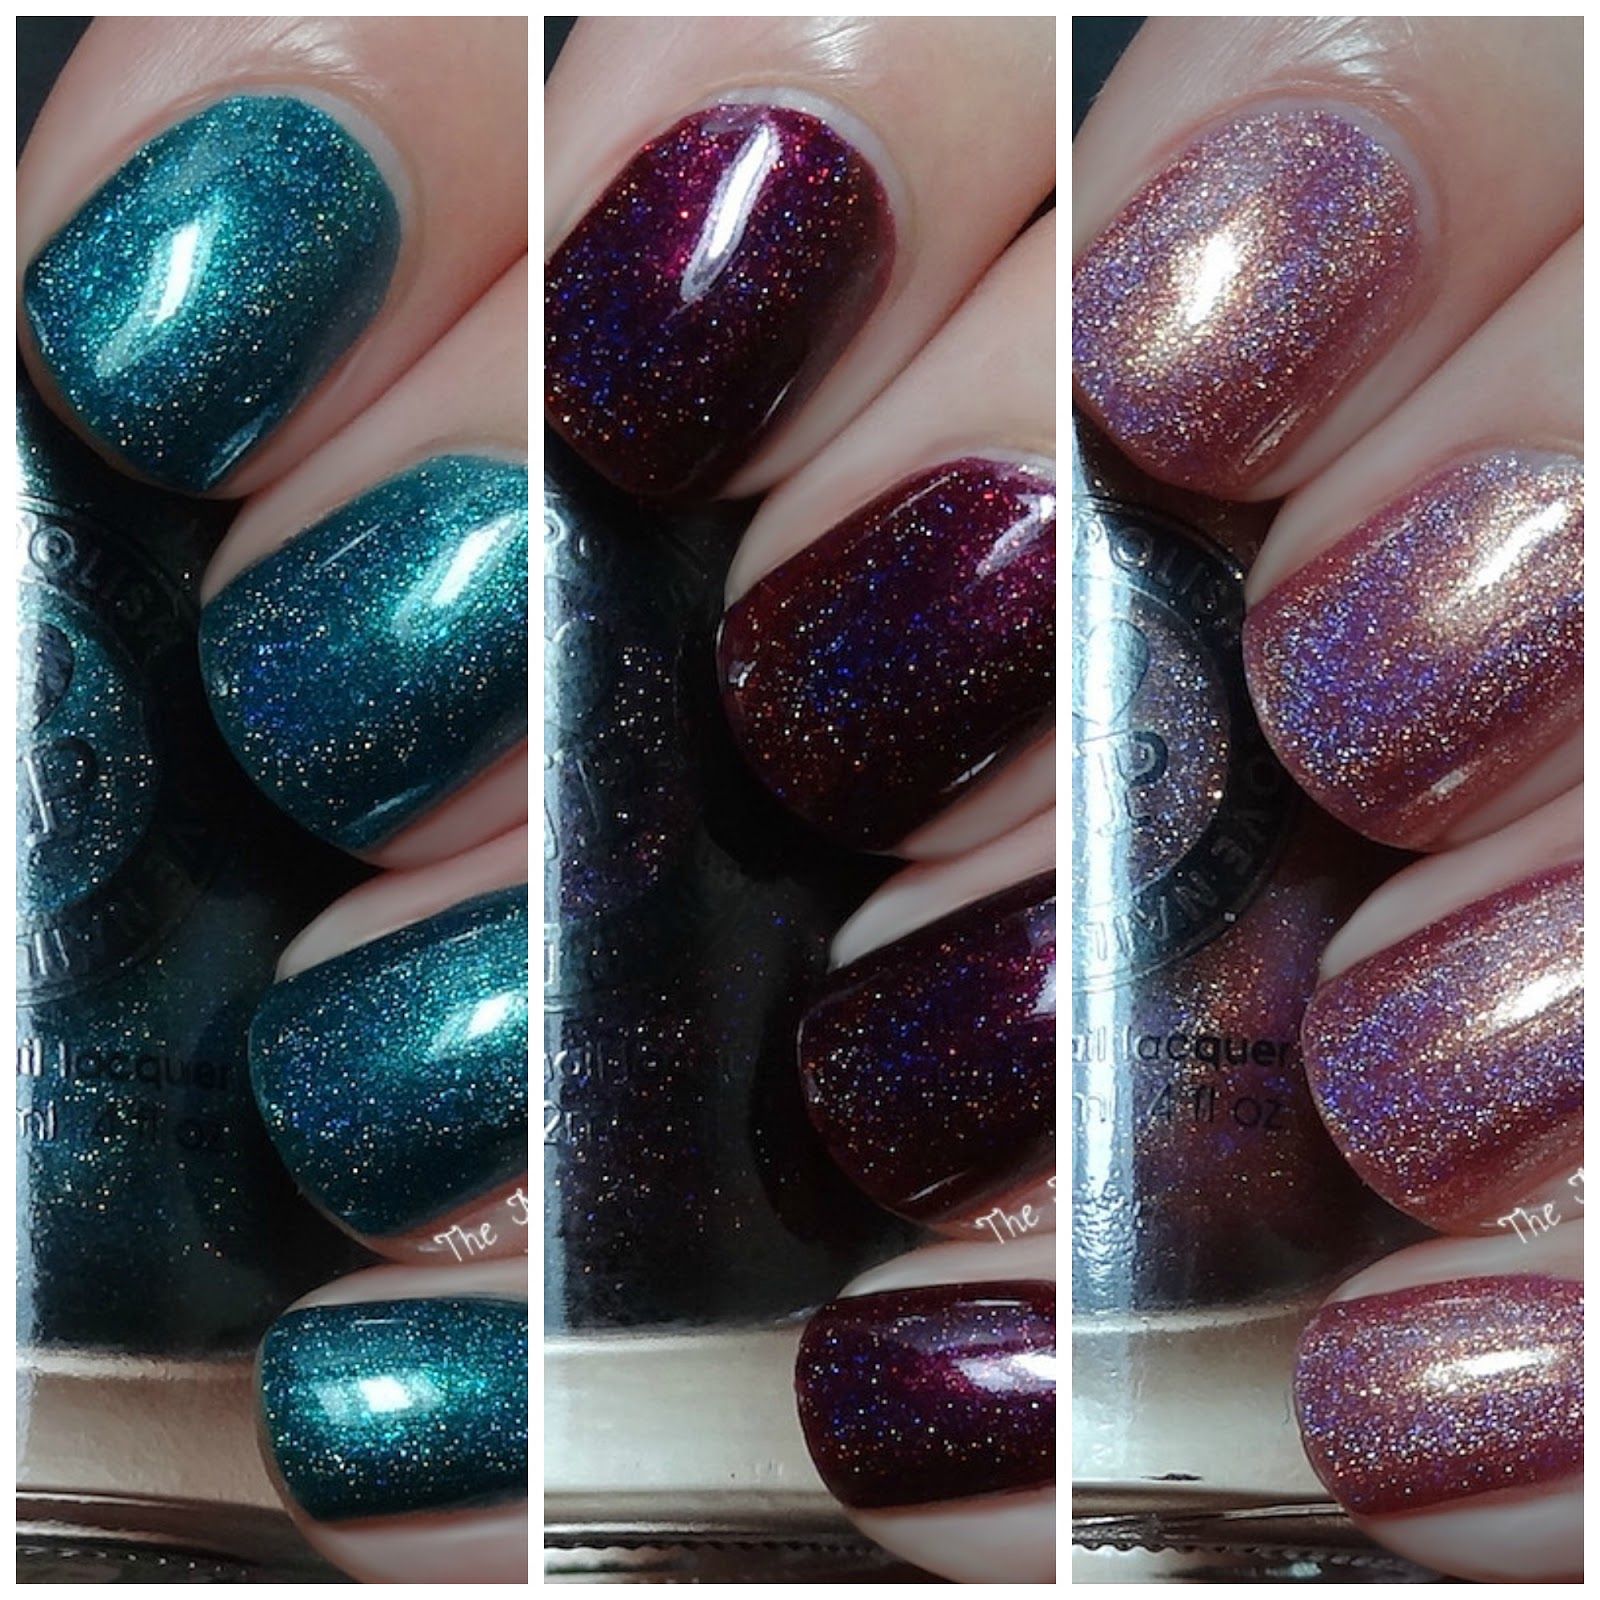 ILNP Fall Collection Holo Swatches - Champange Blush, Fall Semester & Black Orchid